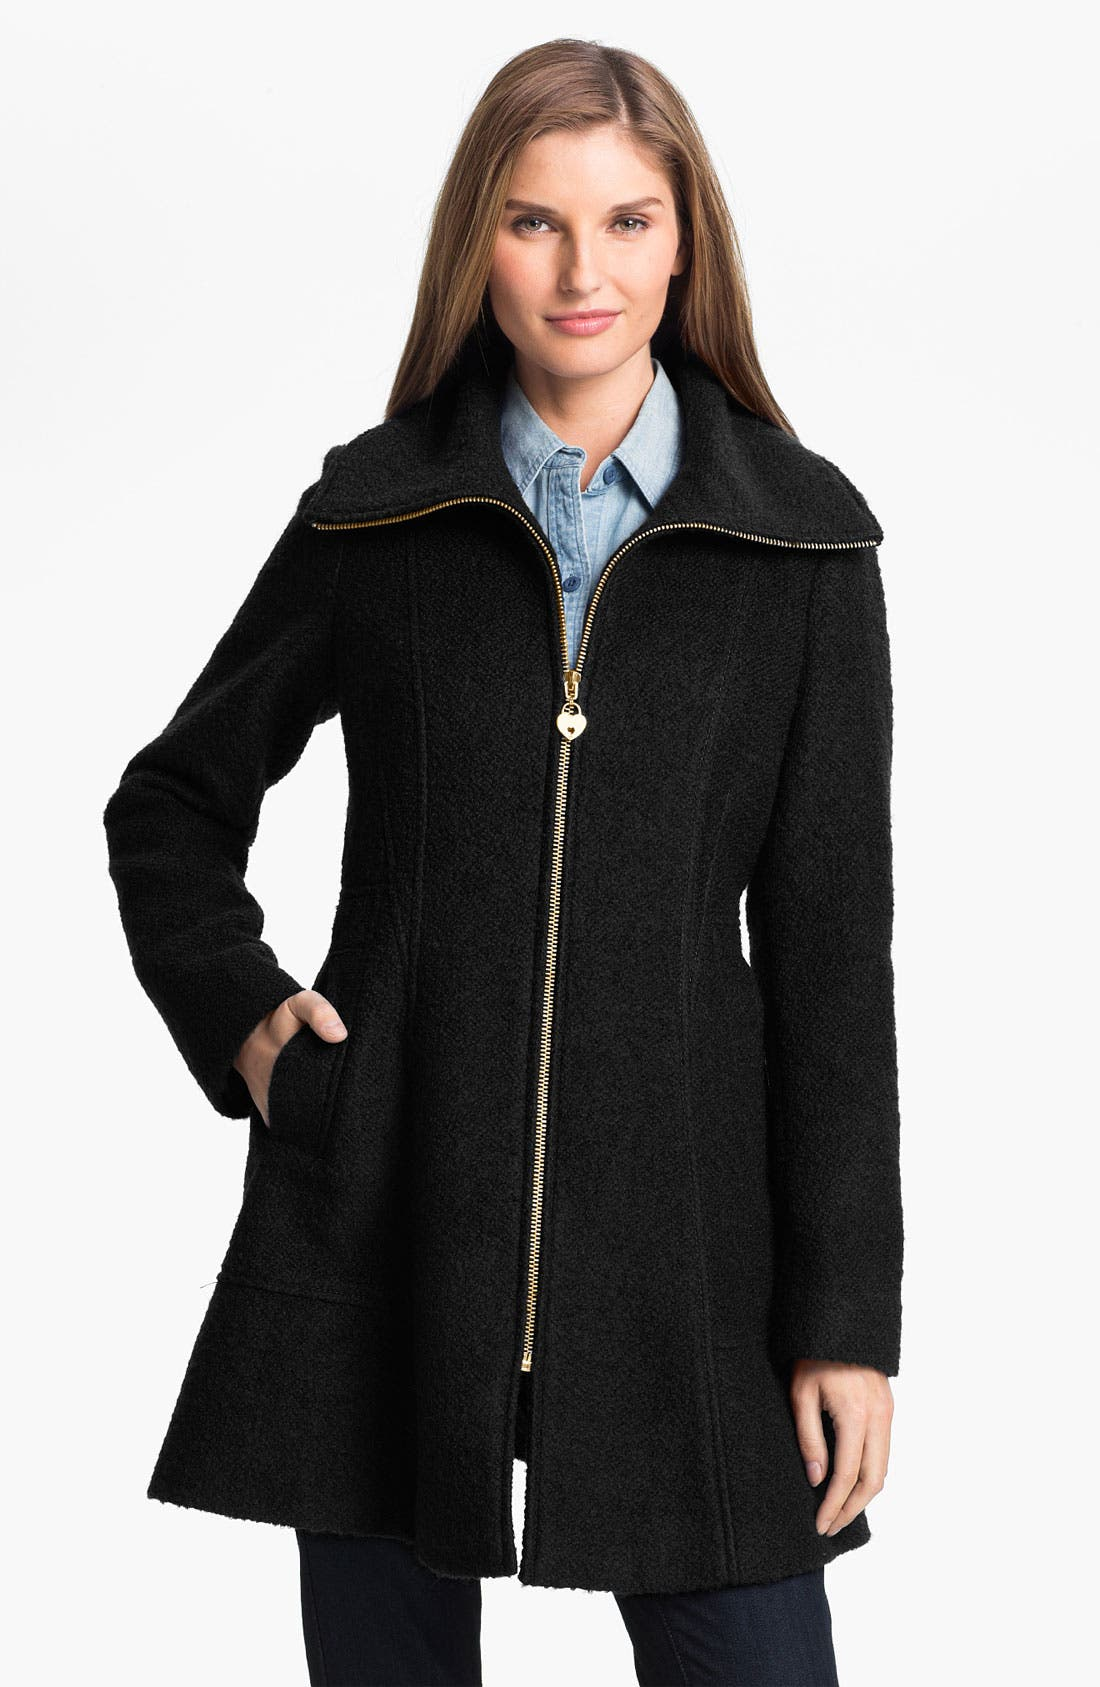 Alternate Image 1 Selected - GUESS Bouclé Walking Coat (Petite) (Online Exclusive)